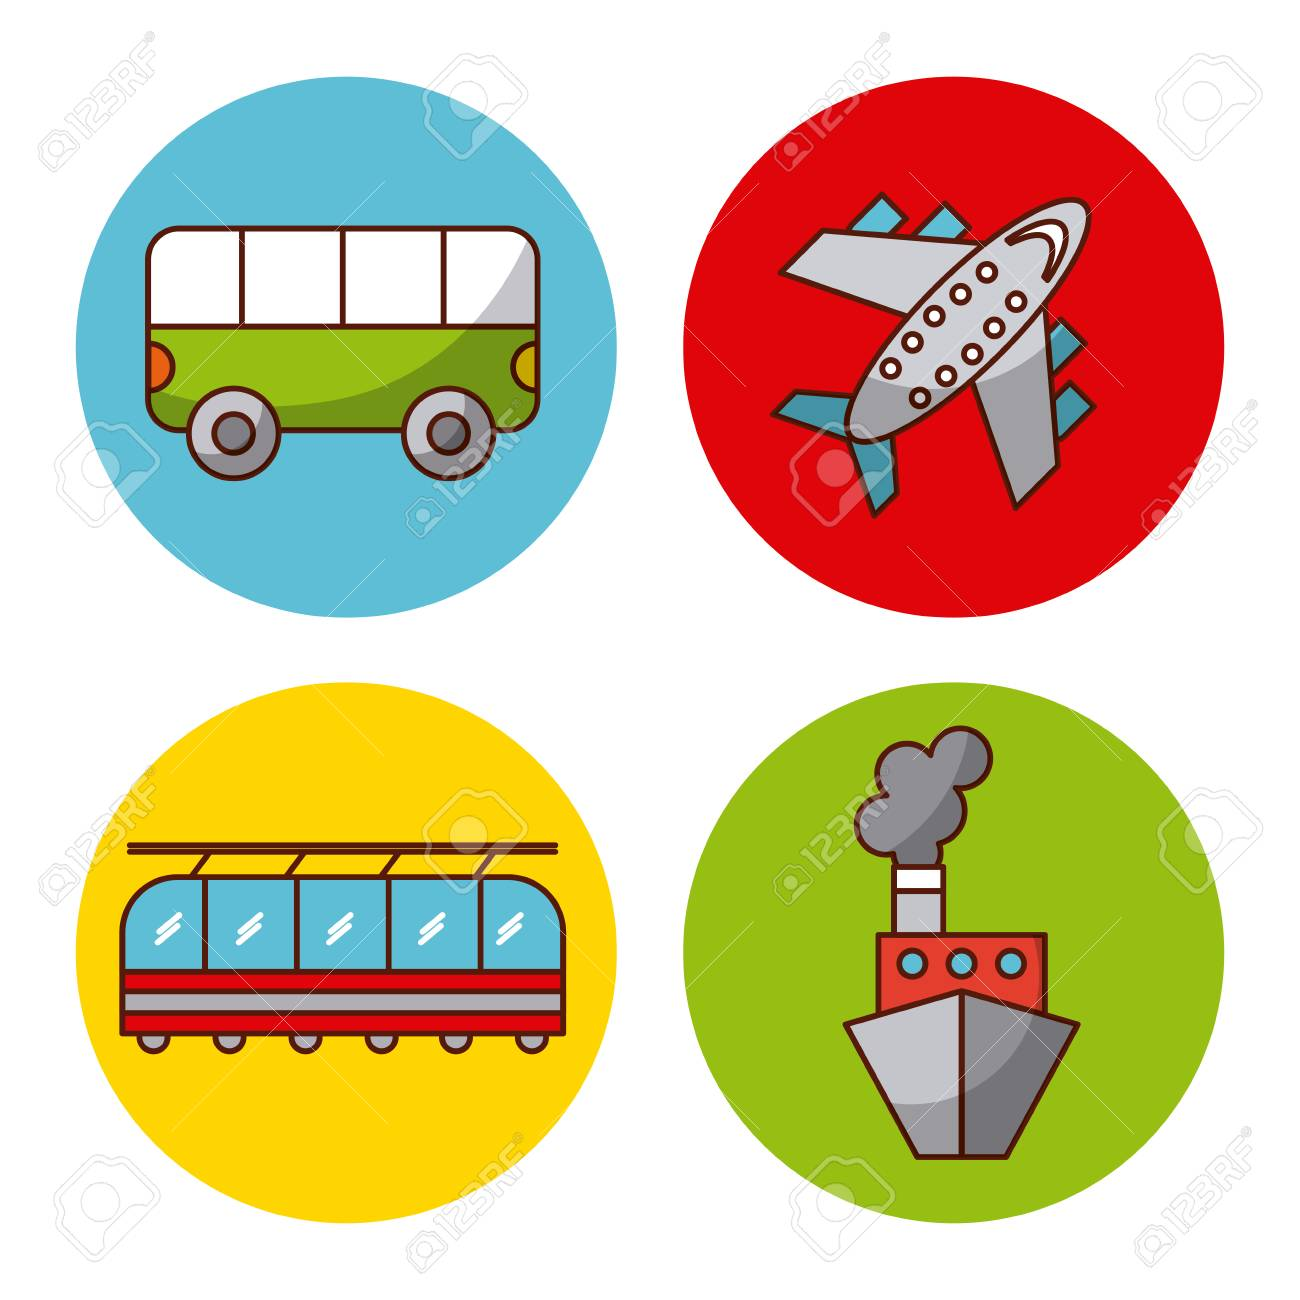 Tourists Traveling By Train - Download Free Vectors, Clipart Graphics & Vector  Art